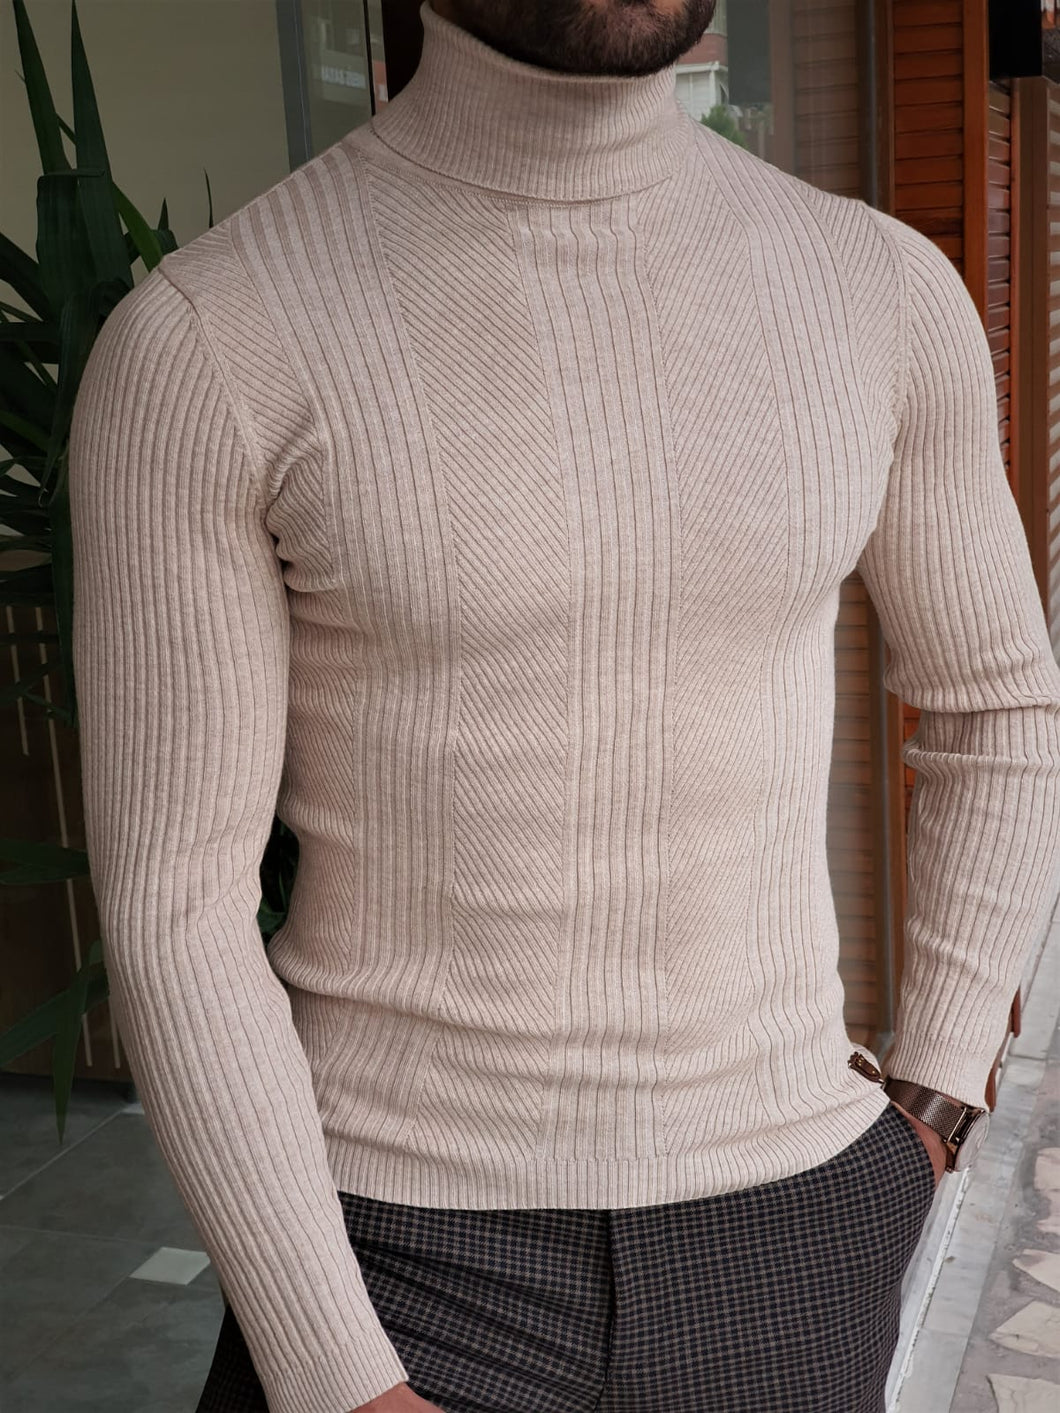 Harrison Slim Fit Striped Beige Turtleneck